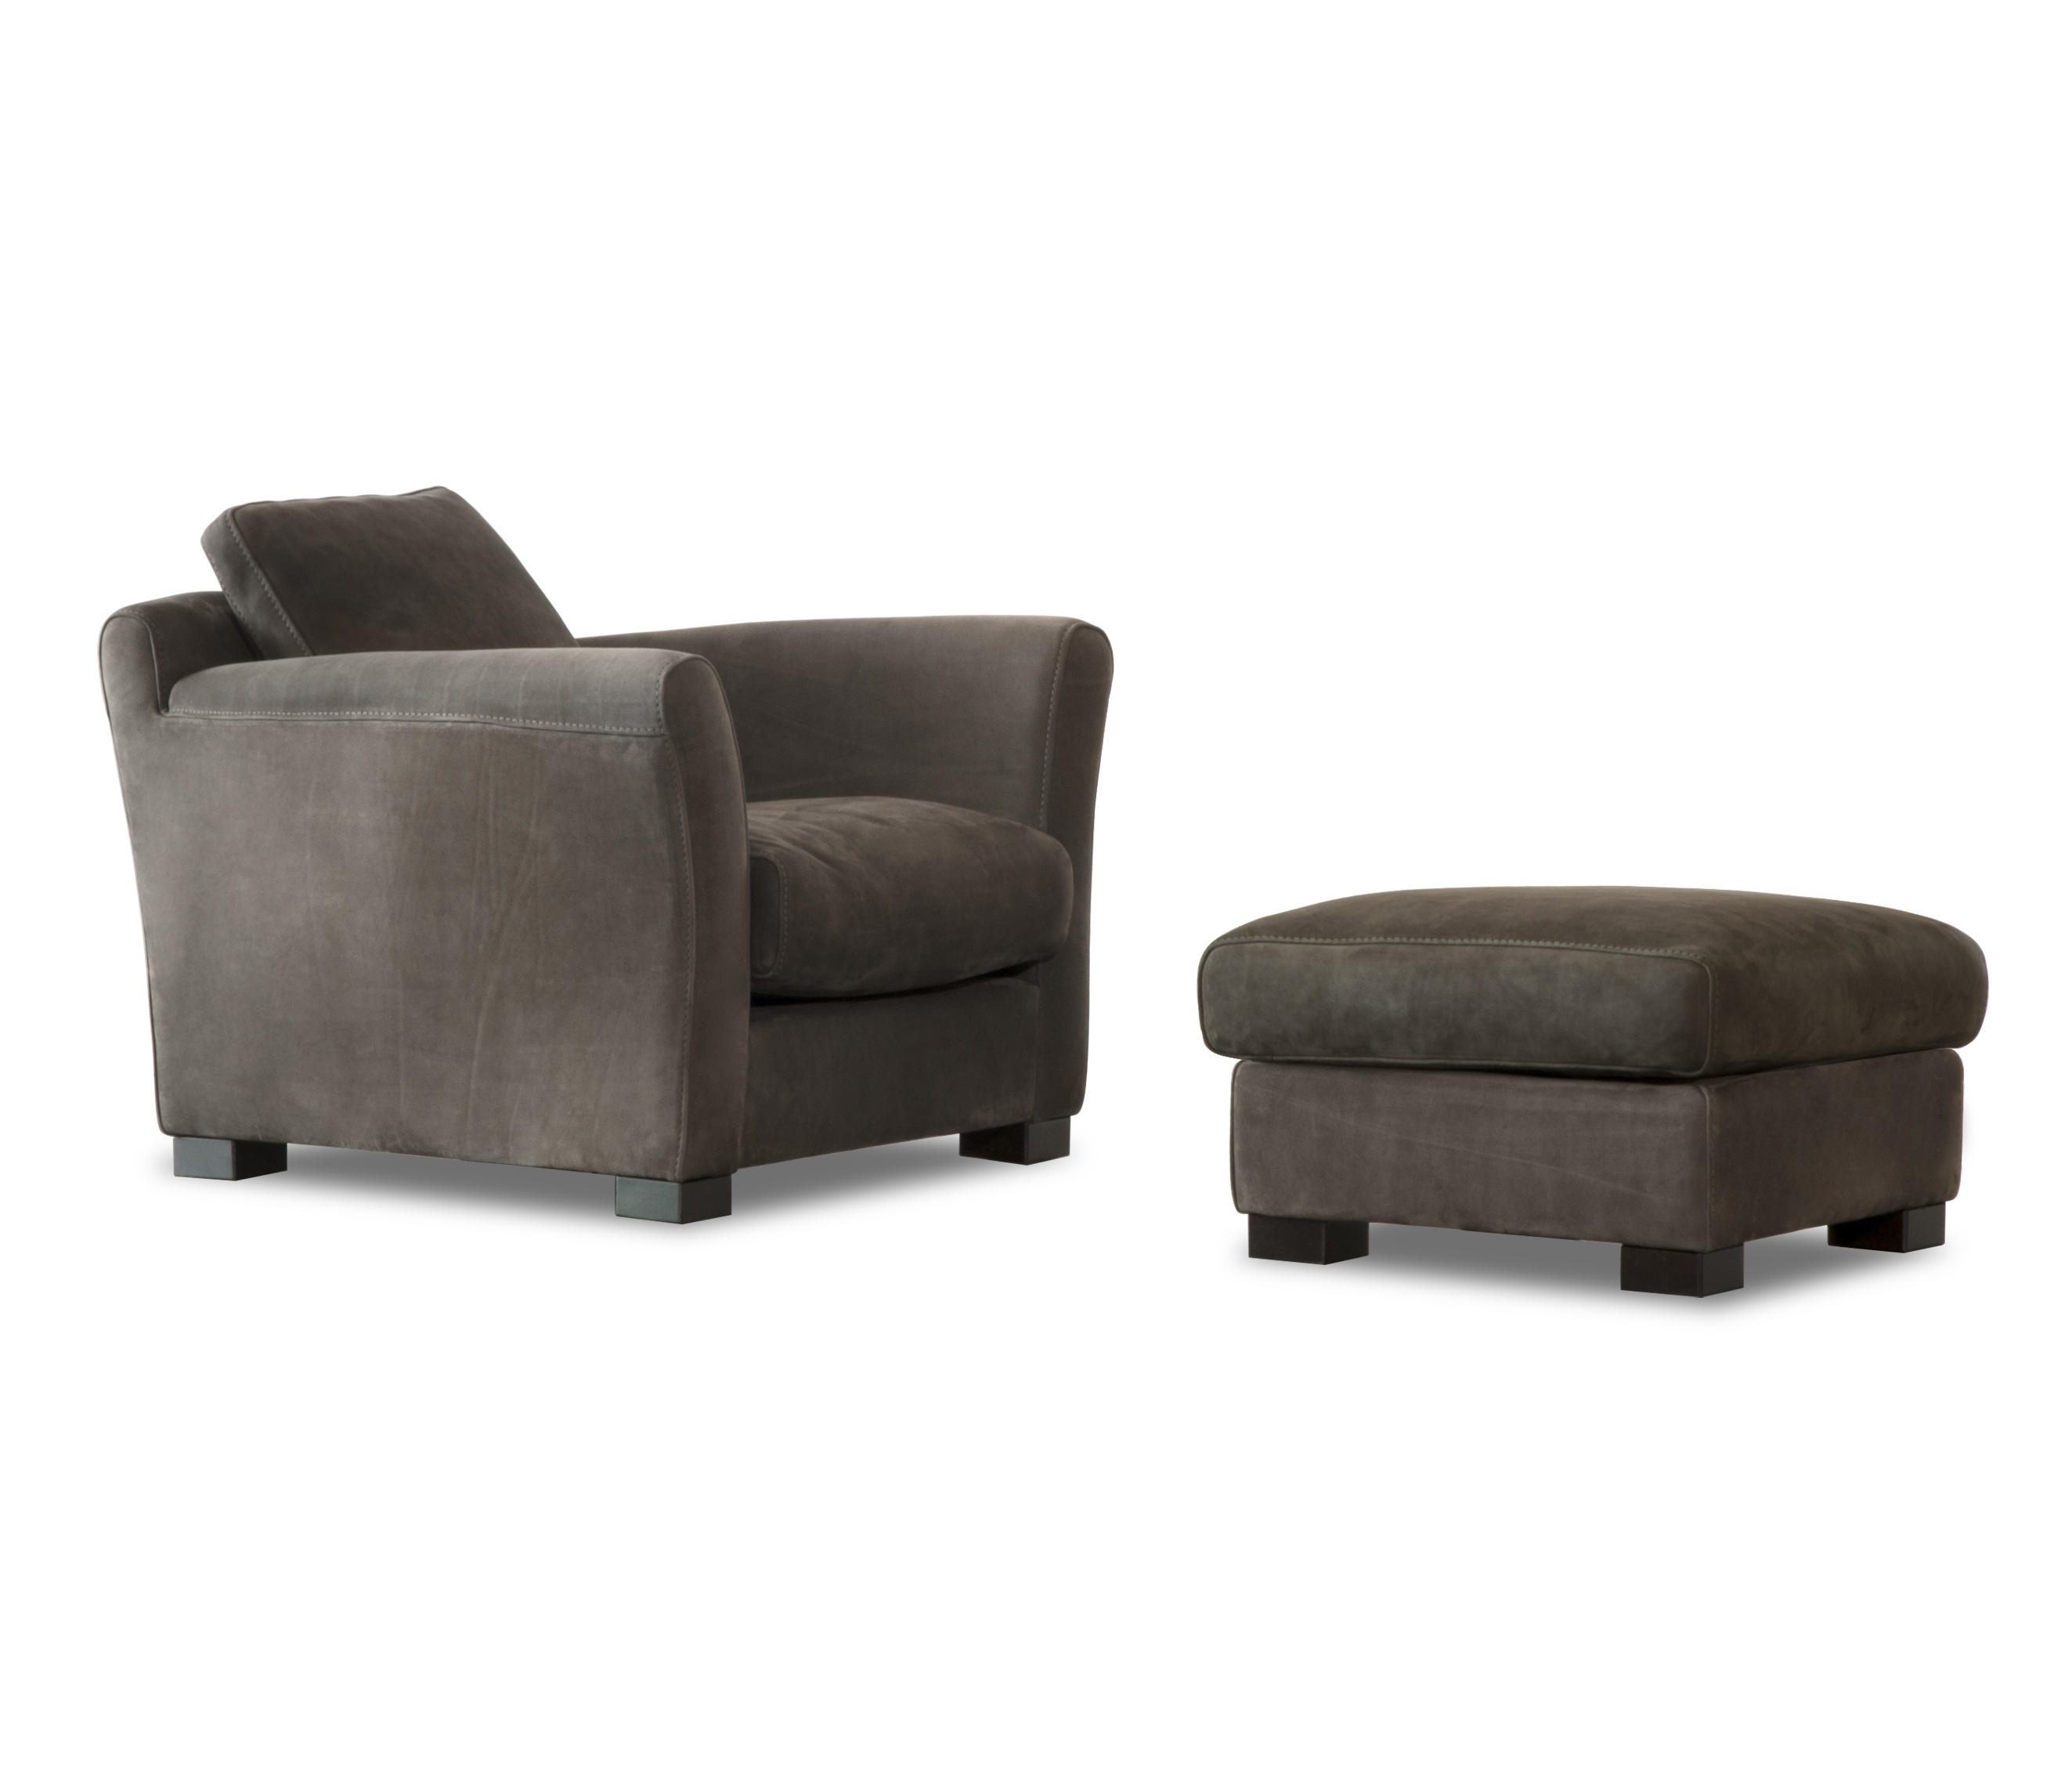 Sessel Diner Diner Armchair Pouf Sessel Von Baxter Architonic